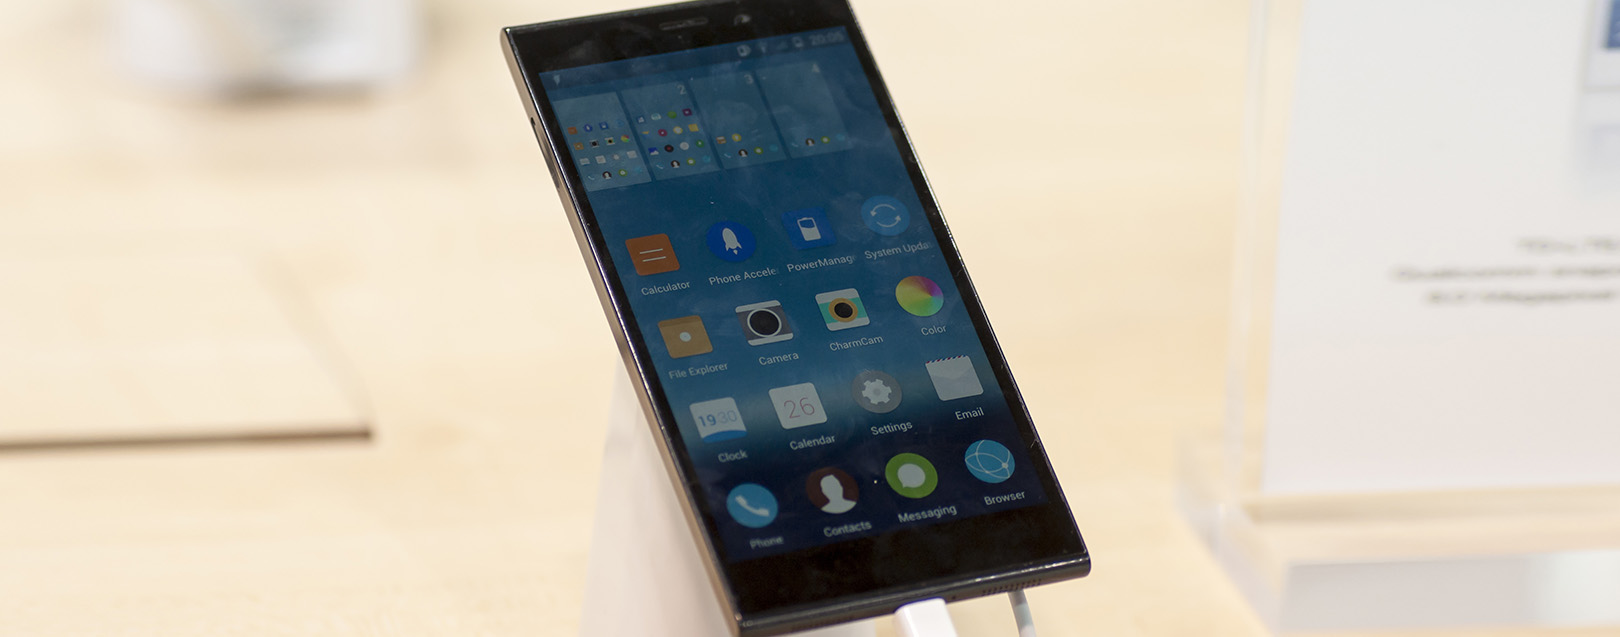 Gionee signs MoU with Haryana govt for investment of Rs 500 cr